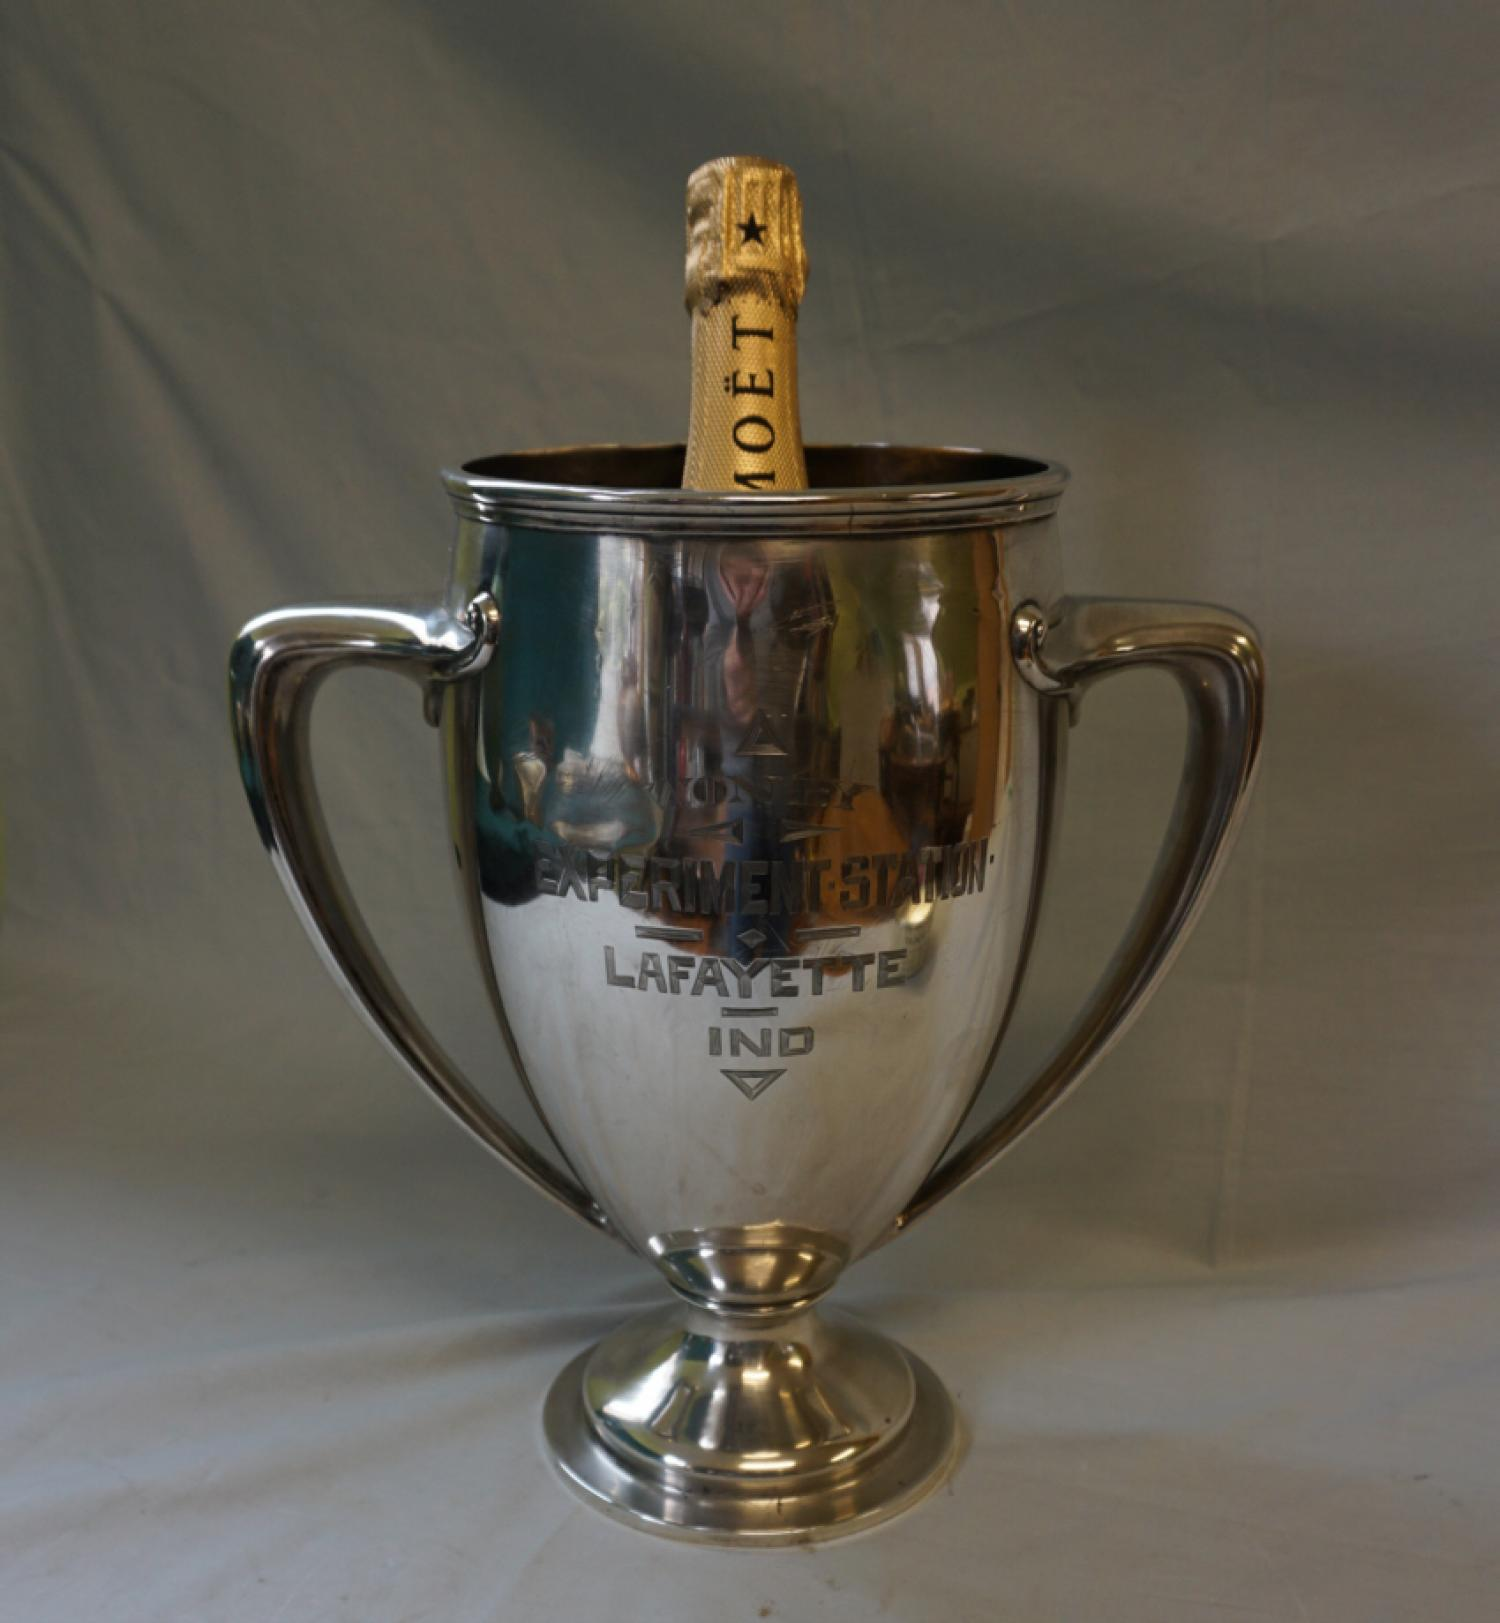 Live Stock Exhibition Short Fed Cattle sterling silver trophy 1907